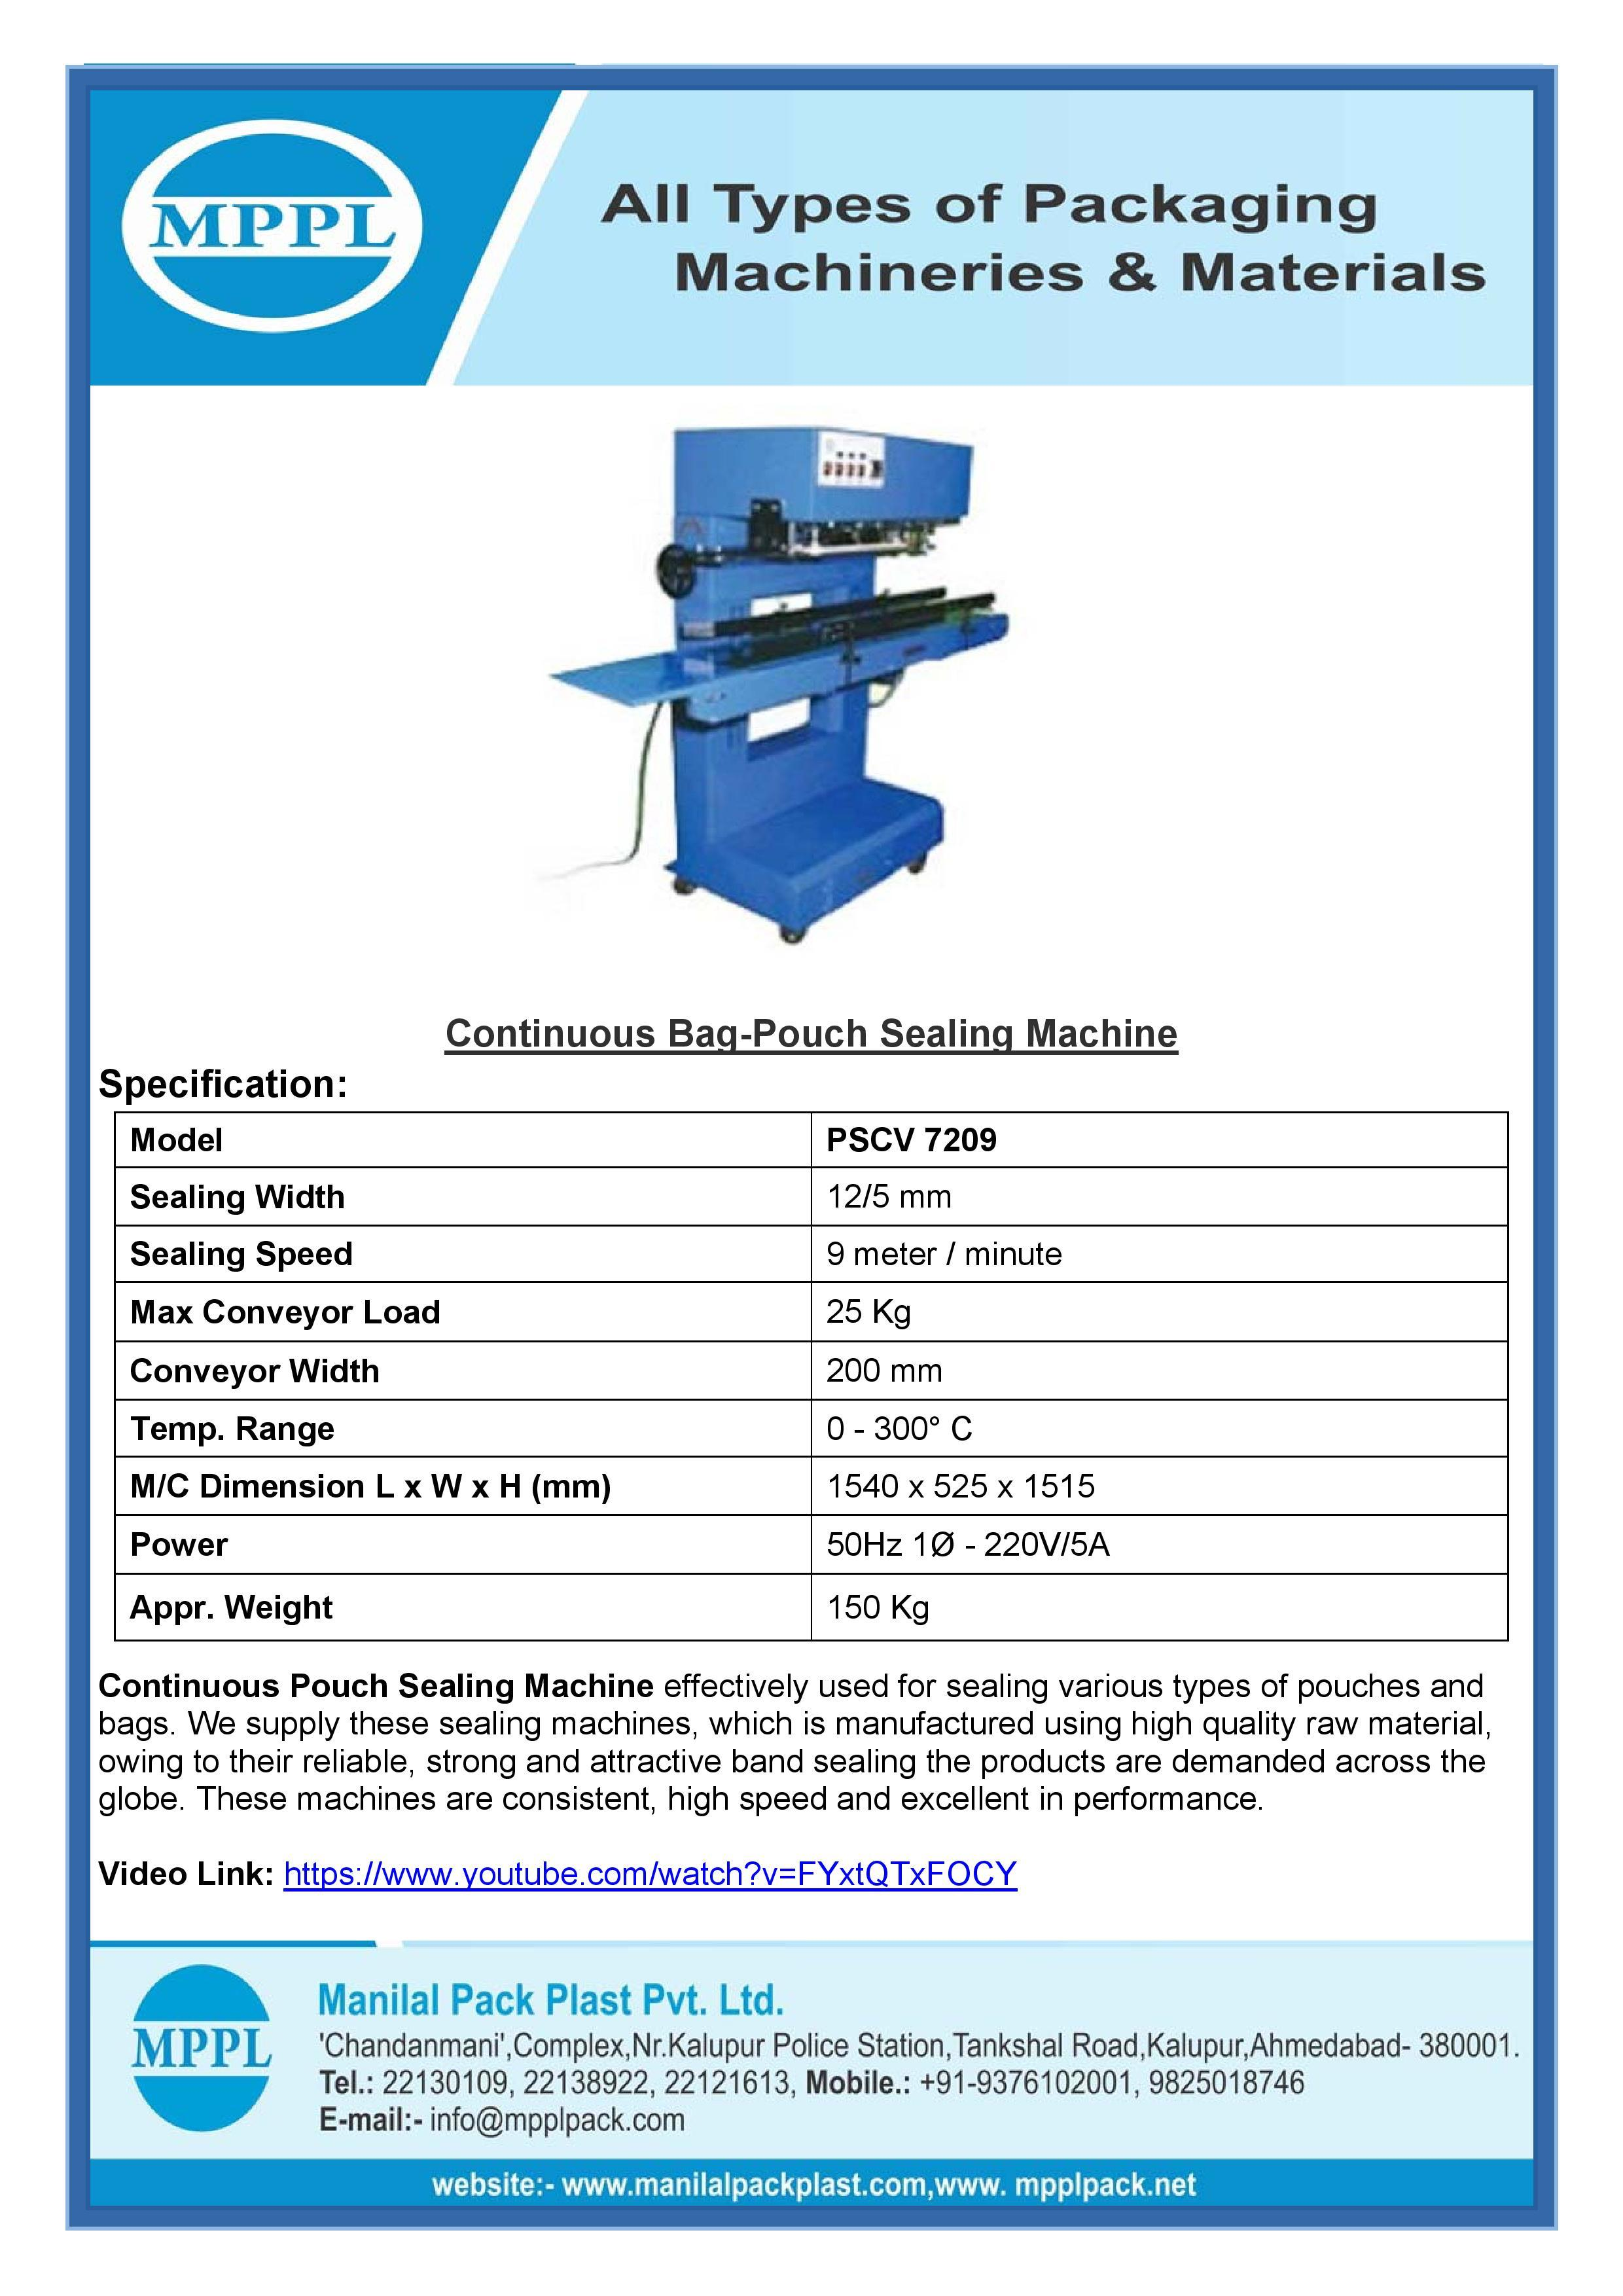 Continuous Bag-Pouch Sealing Machine 7209